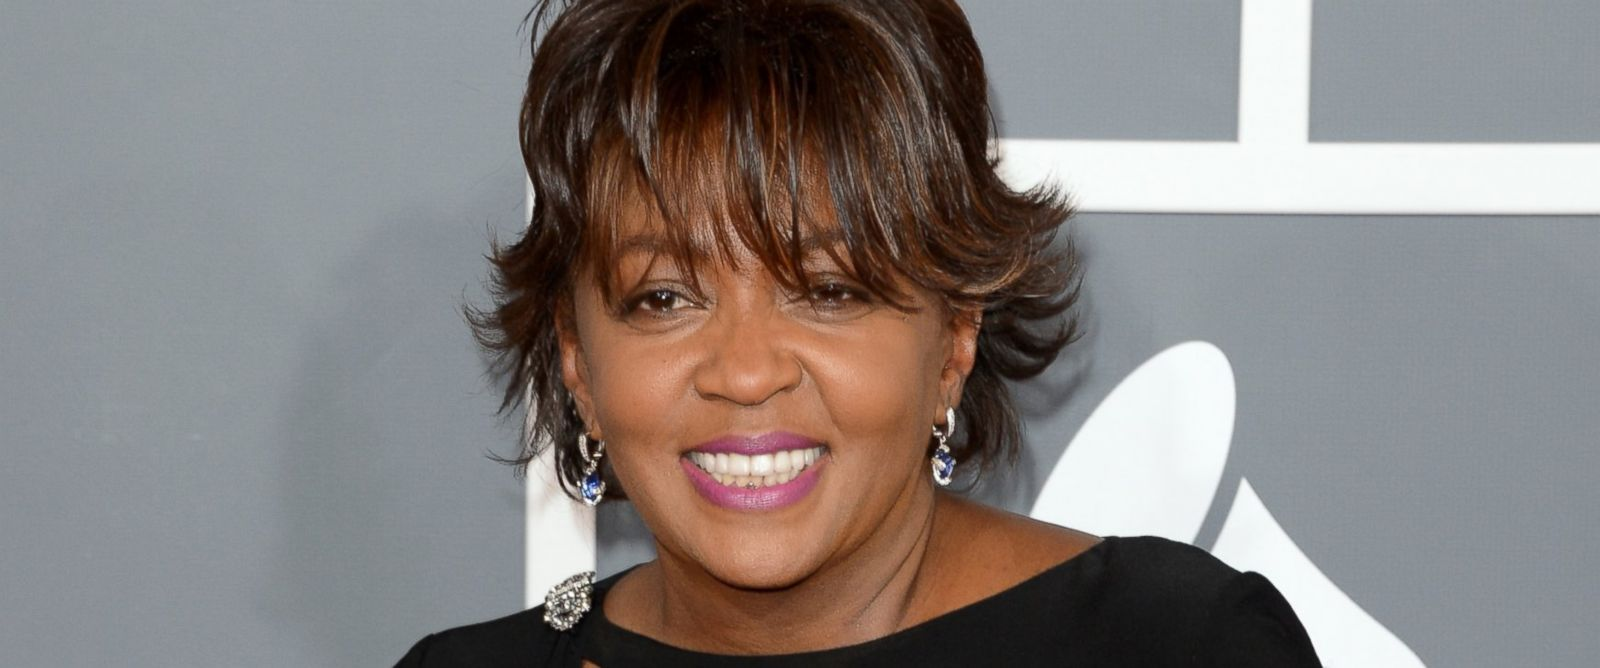 PHOTO: Singer Anita Baker arrives at the 55th Annual Grammy Awards at Staples Center in this Feb. 10, 2013, file photo.